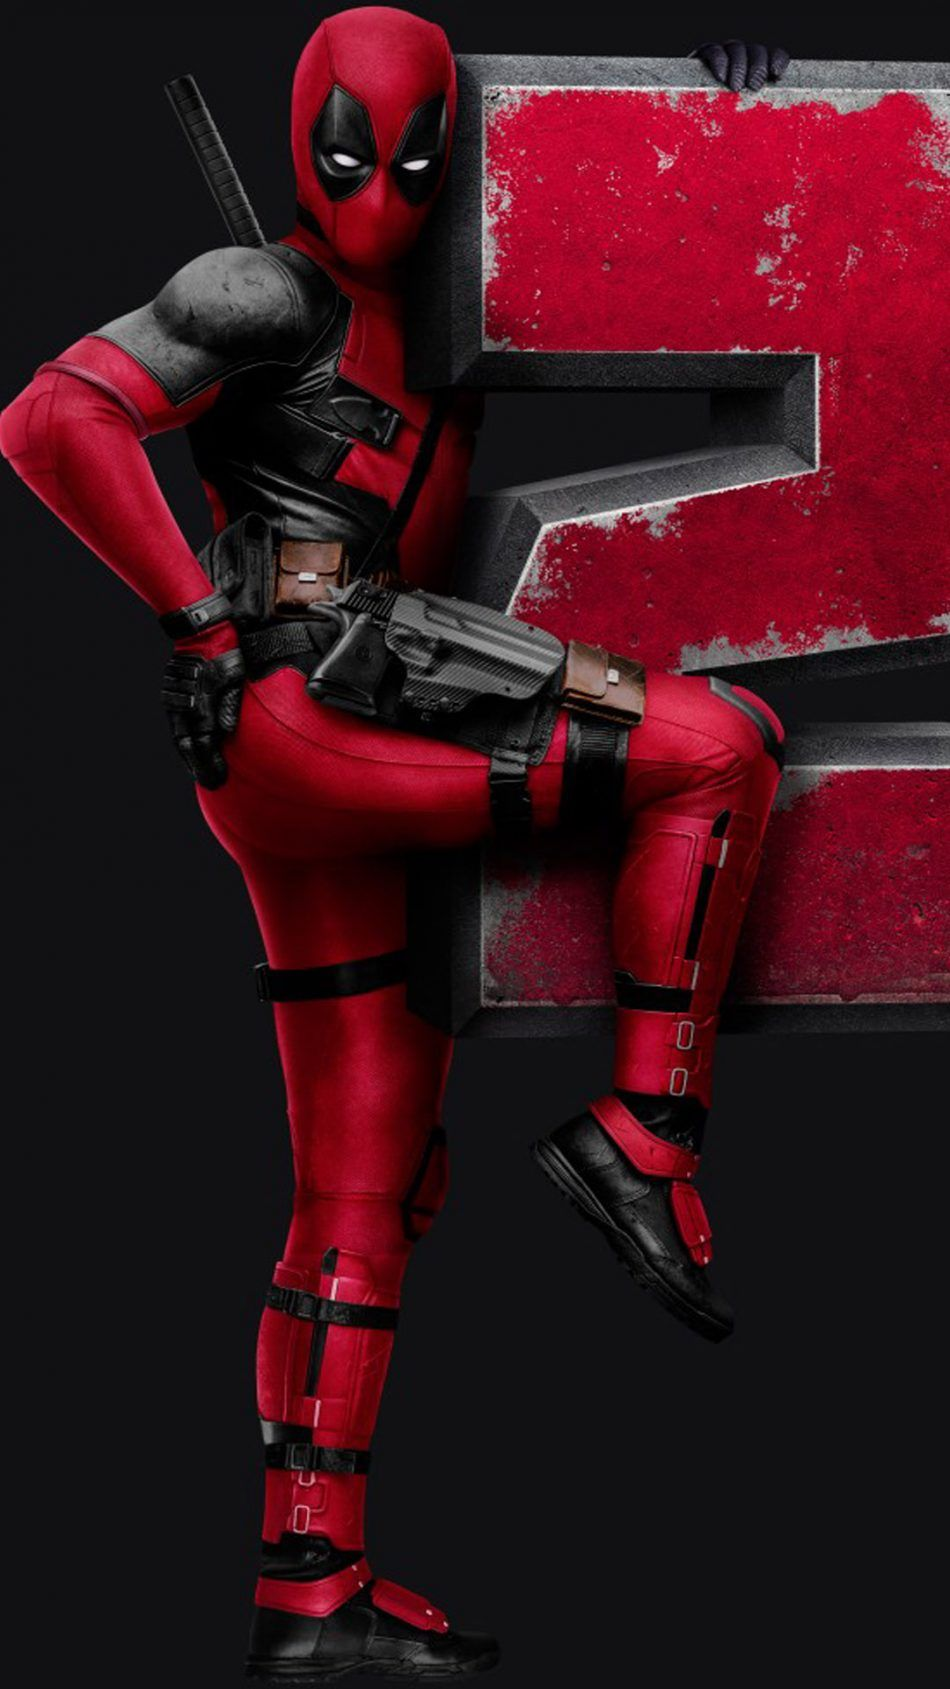 Res 3840x2160 Original Resolution Popular Deadpool